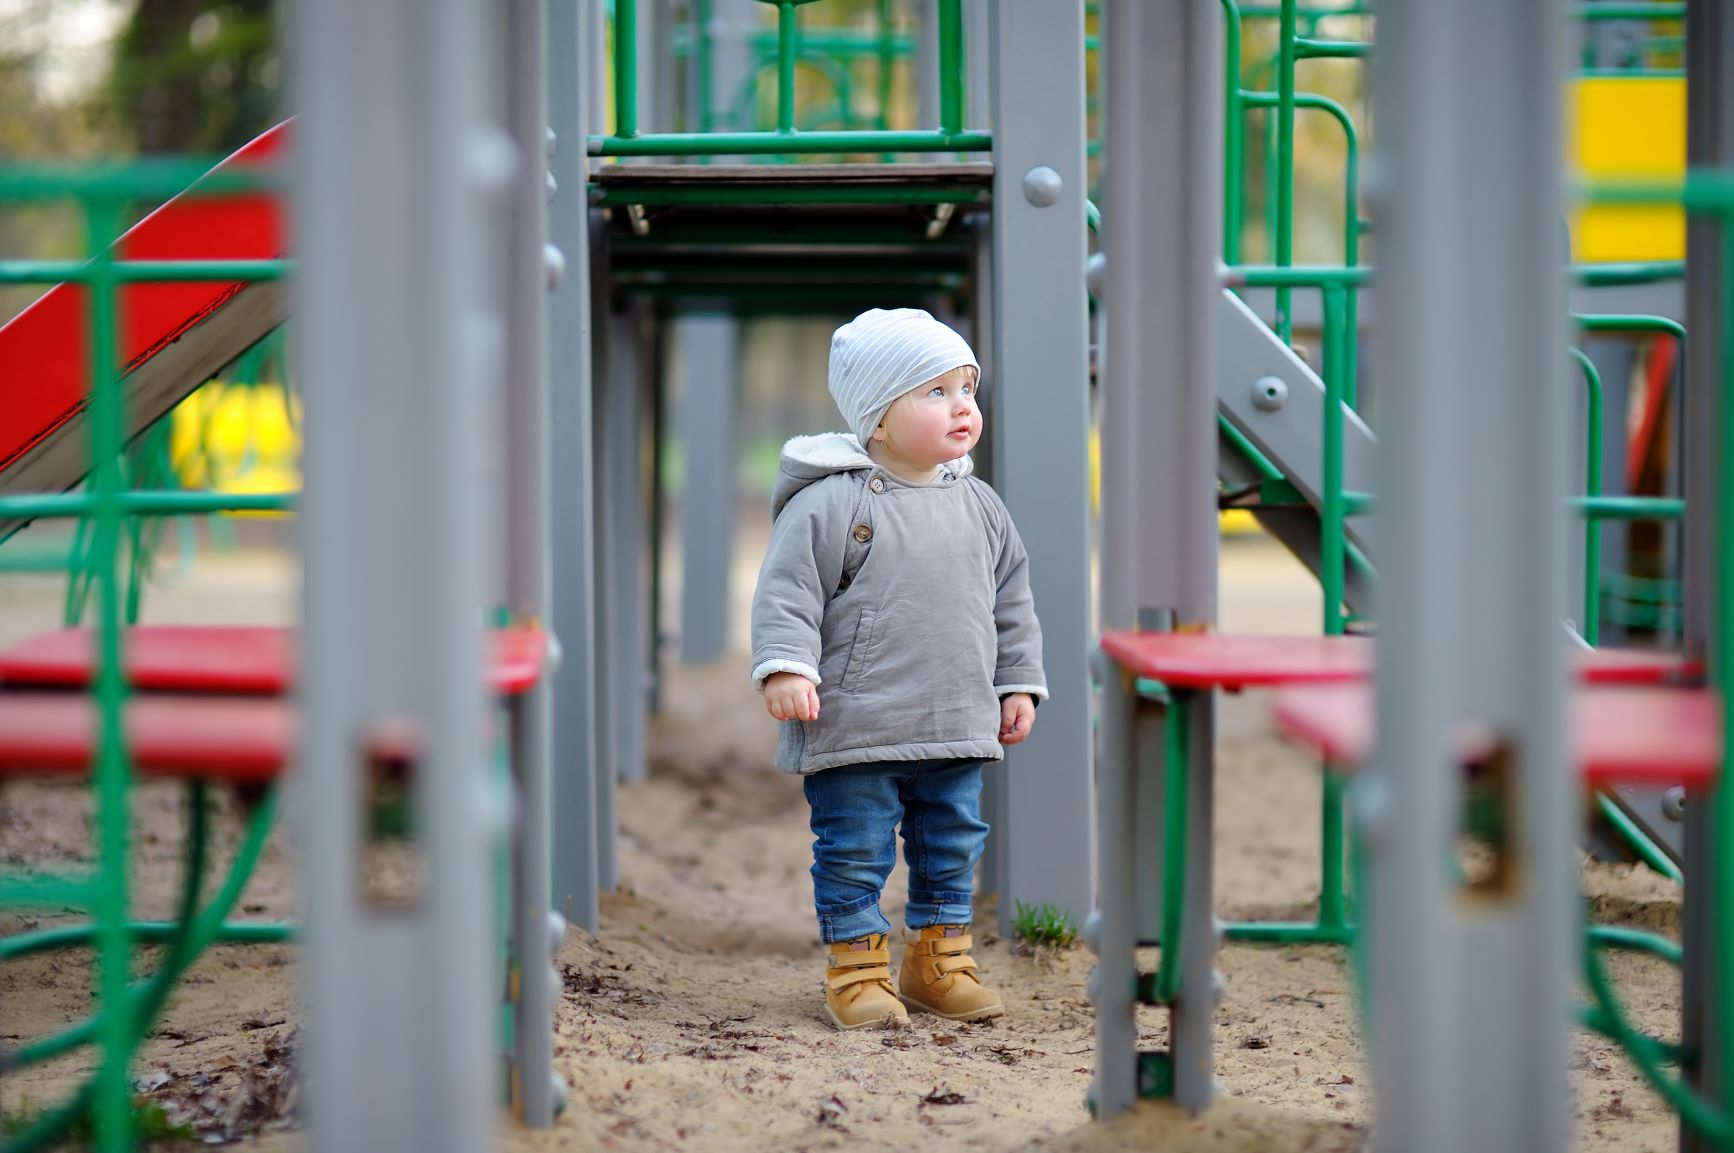 5. Canva - Toddler on Playground